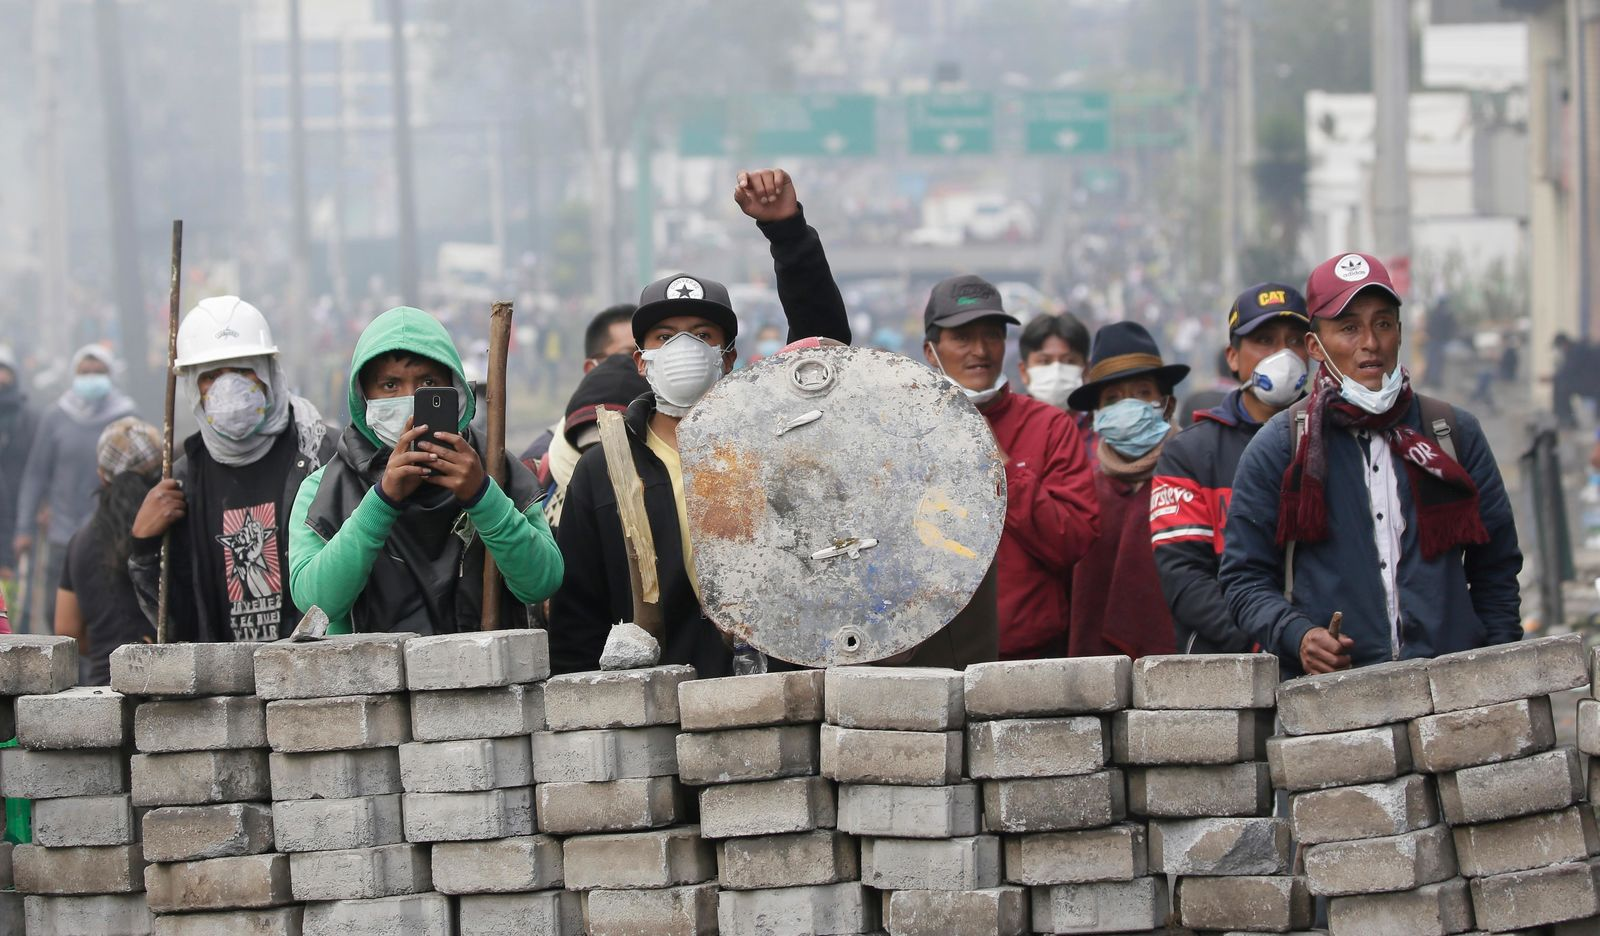 Anti-government demonstrators man a barricade during clashes with the police, near the national assembly building in Quito, Ecuador, Saturday, Oct. 12, 2019. AP Photo/Dolores Ochoa)